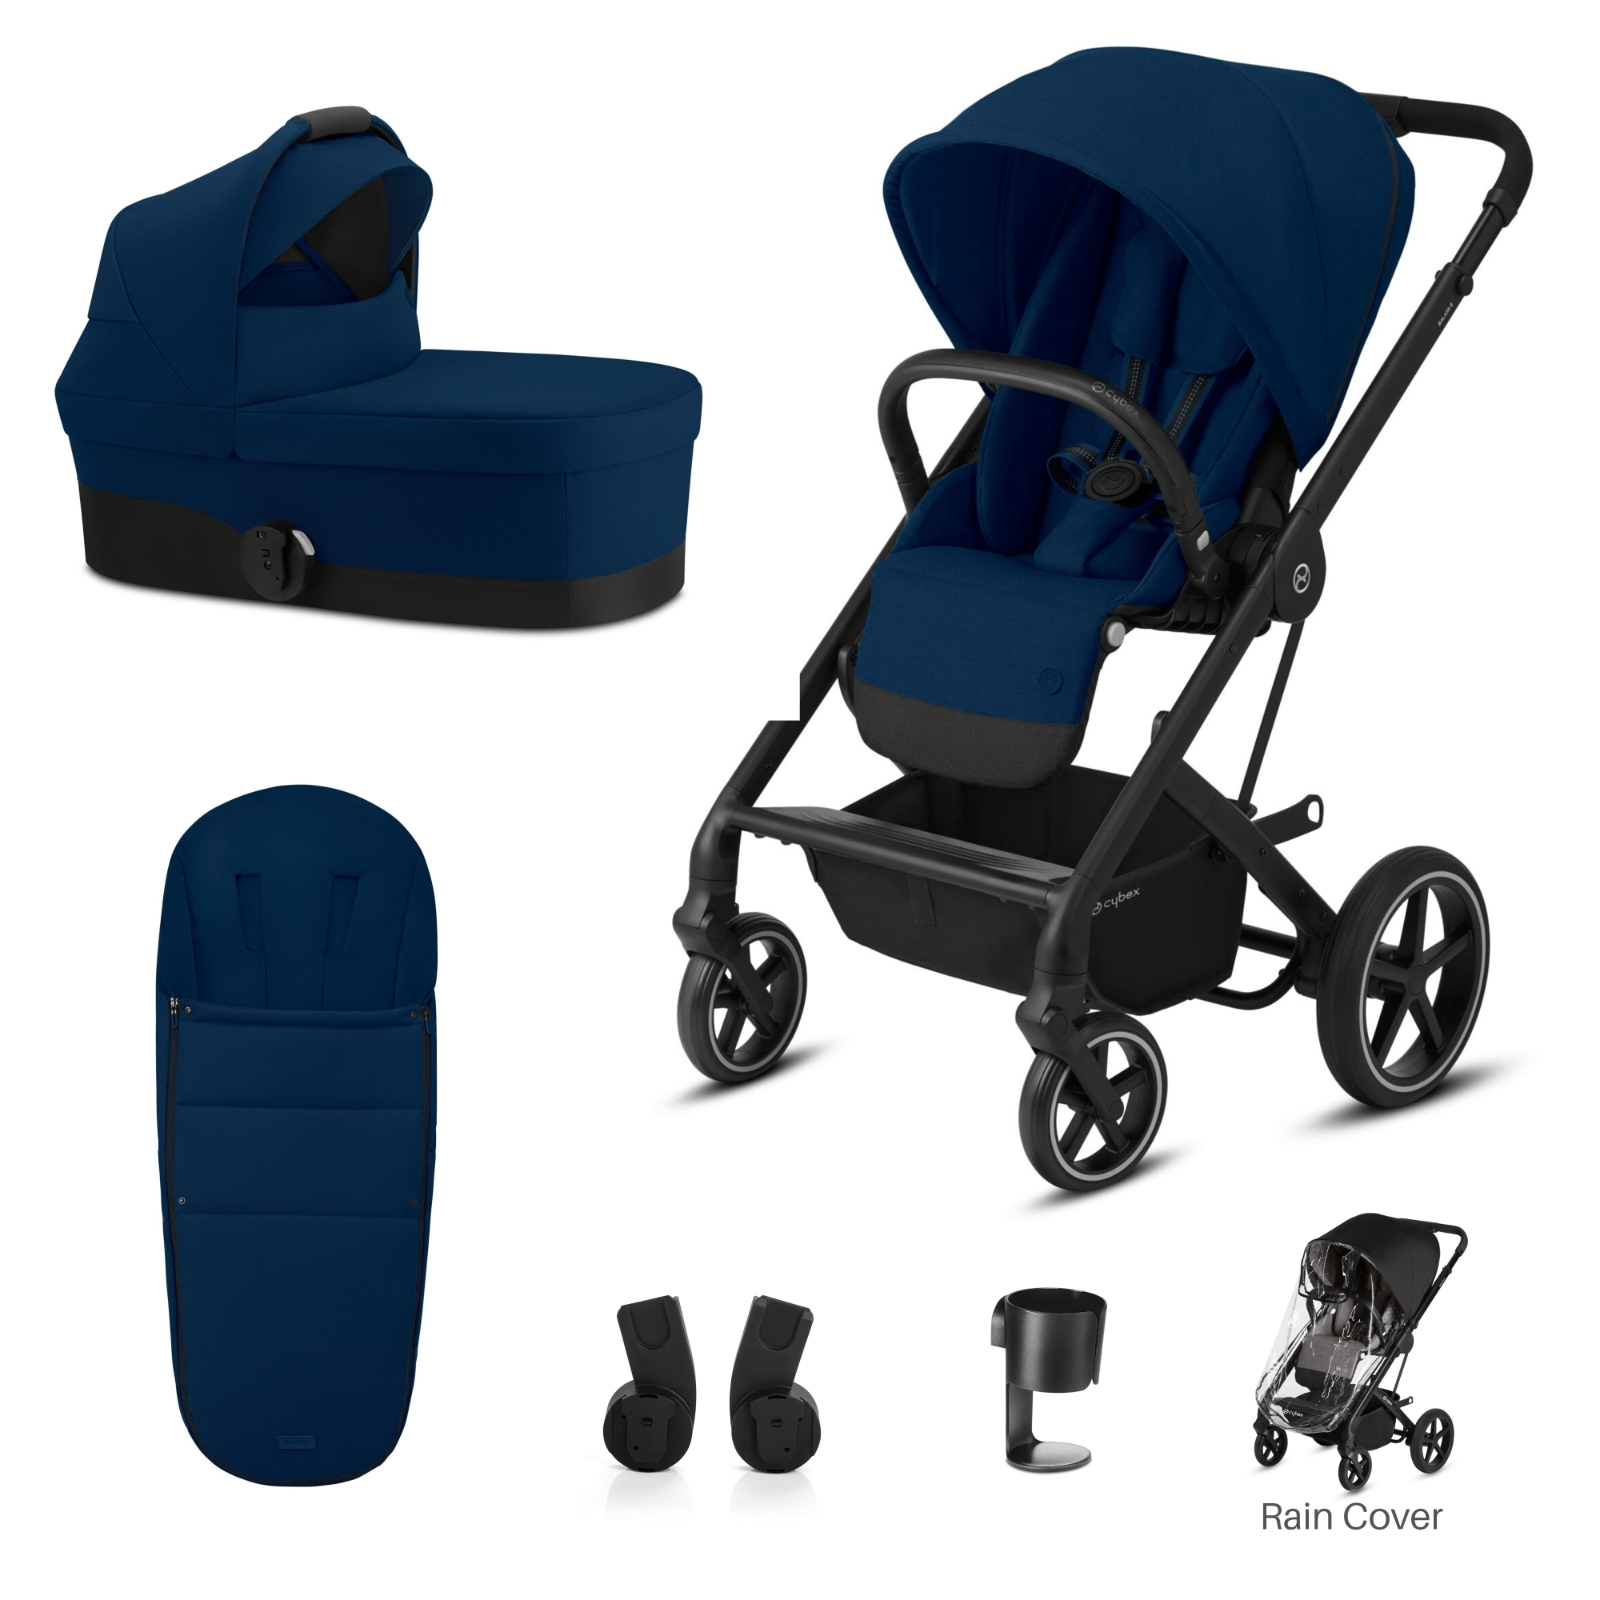 Cybex Balios S Lux Bundle 2 (Black Chassis) - Navy Blue